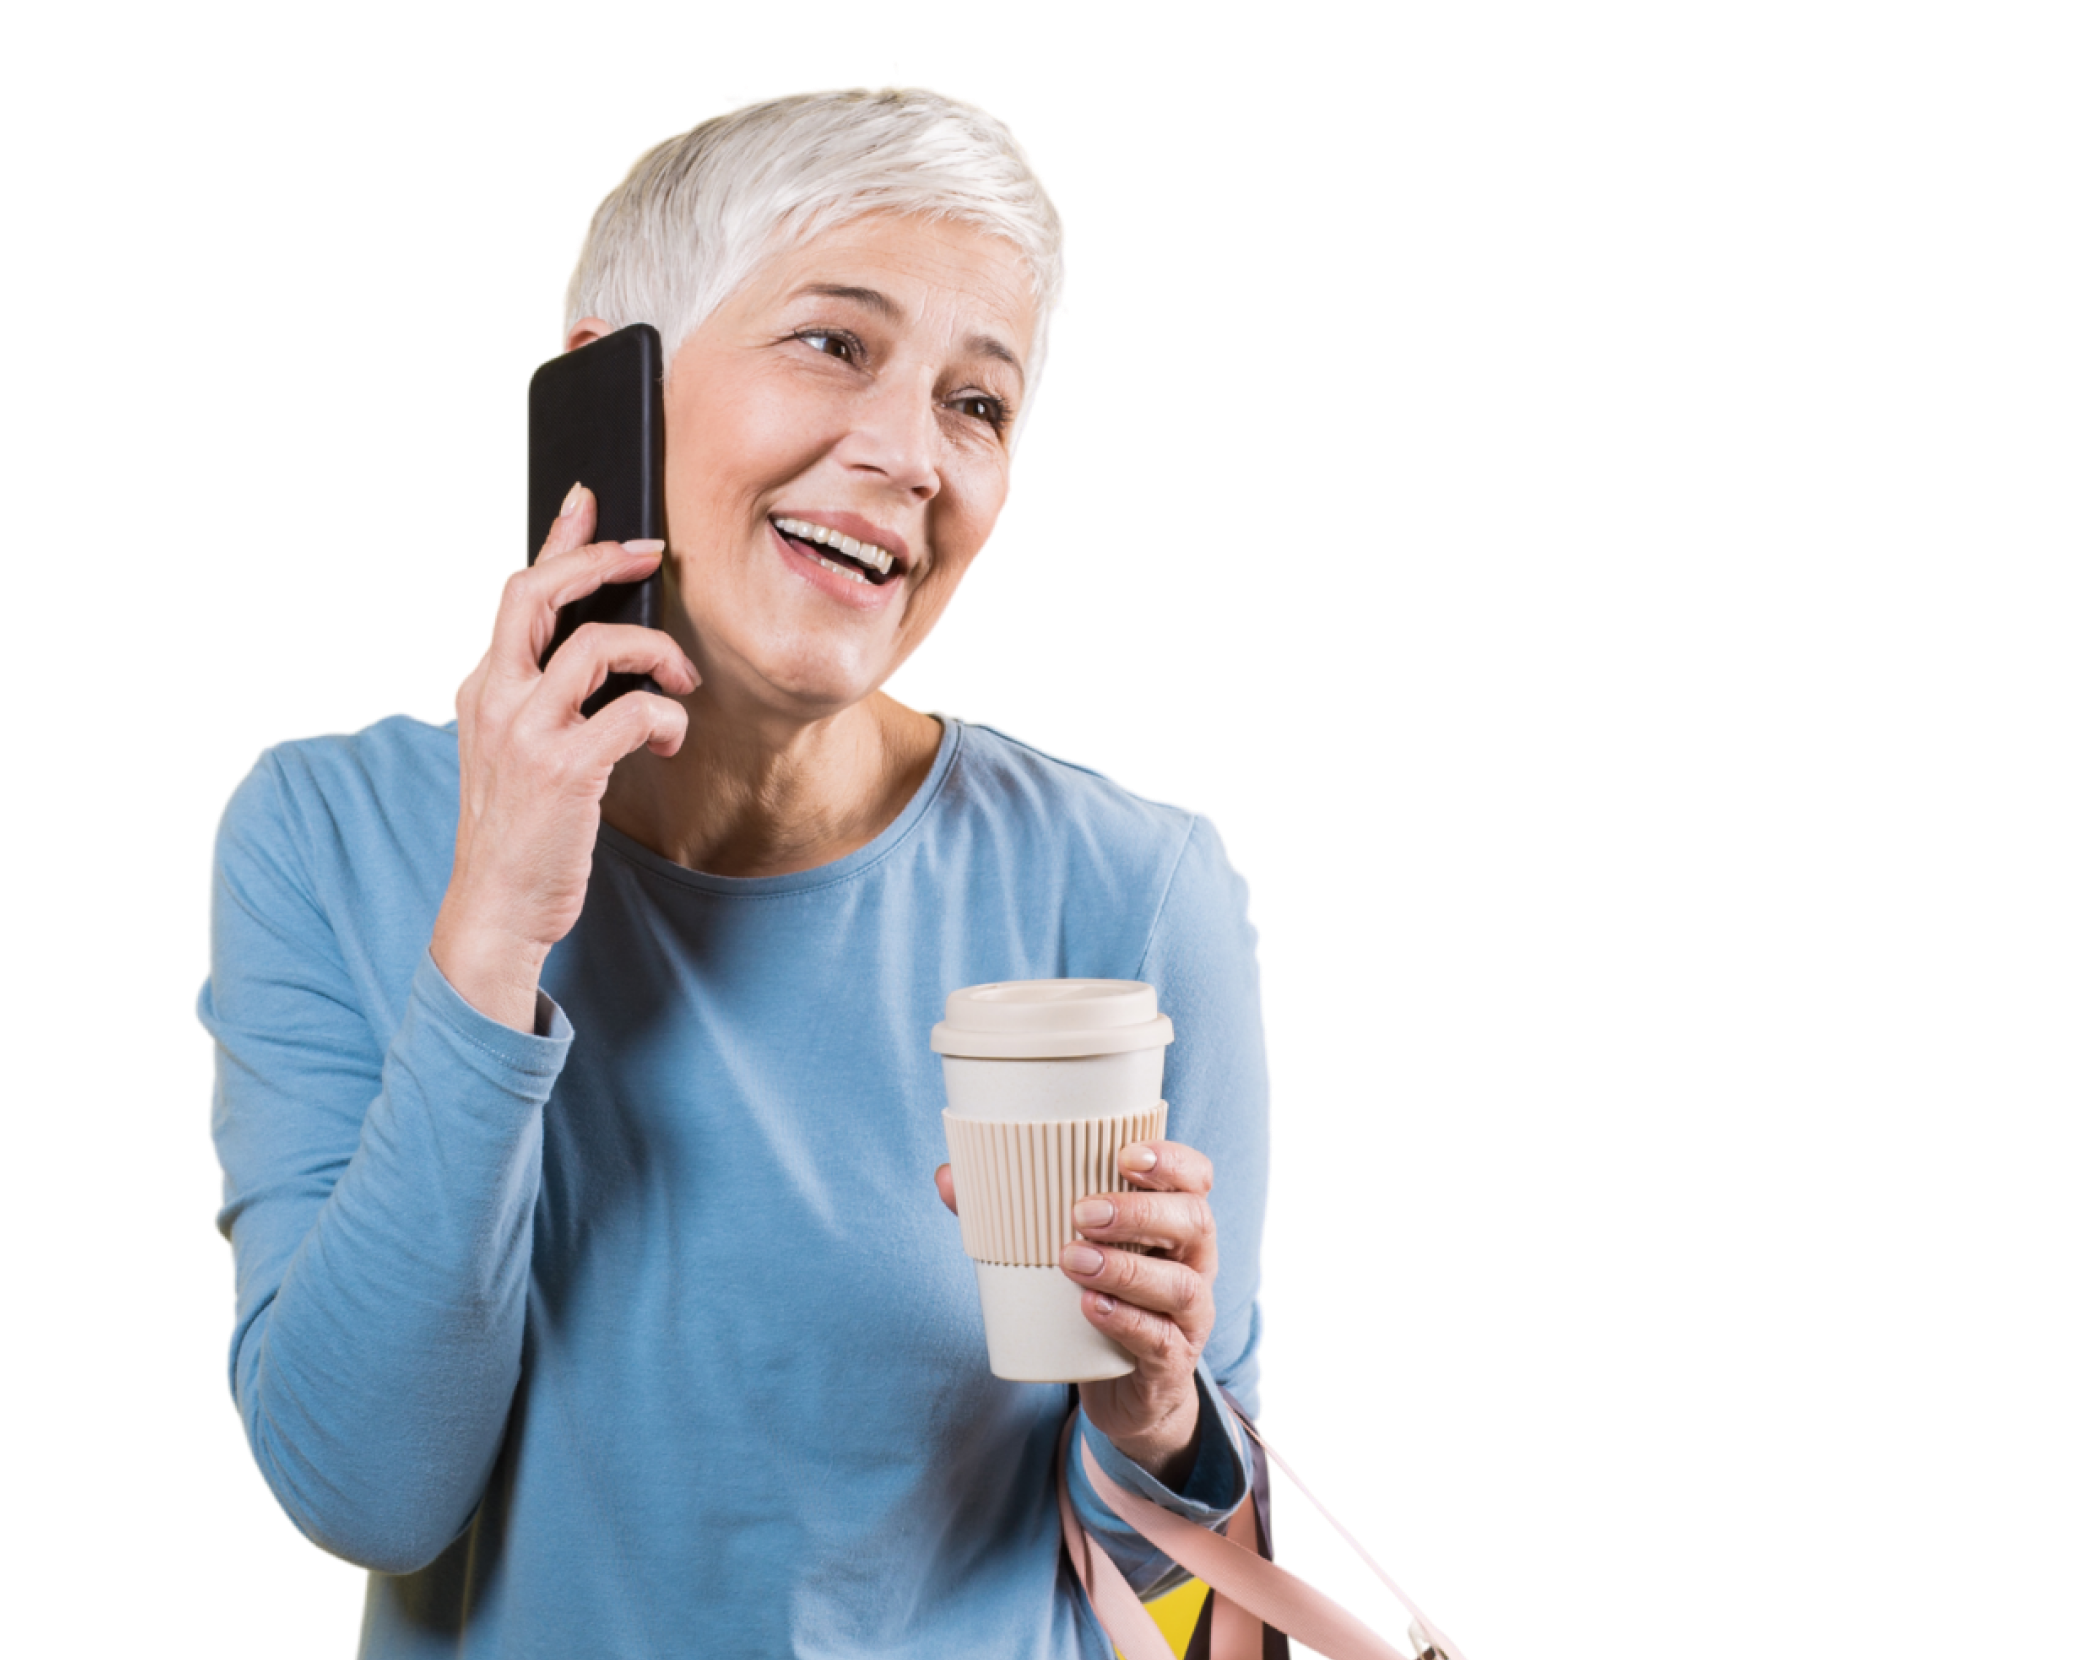 Woman on the phone carrying a coffee